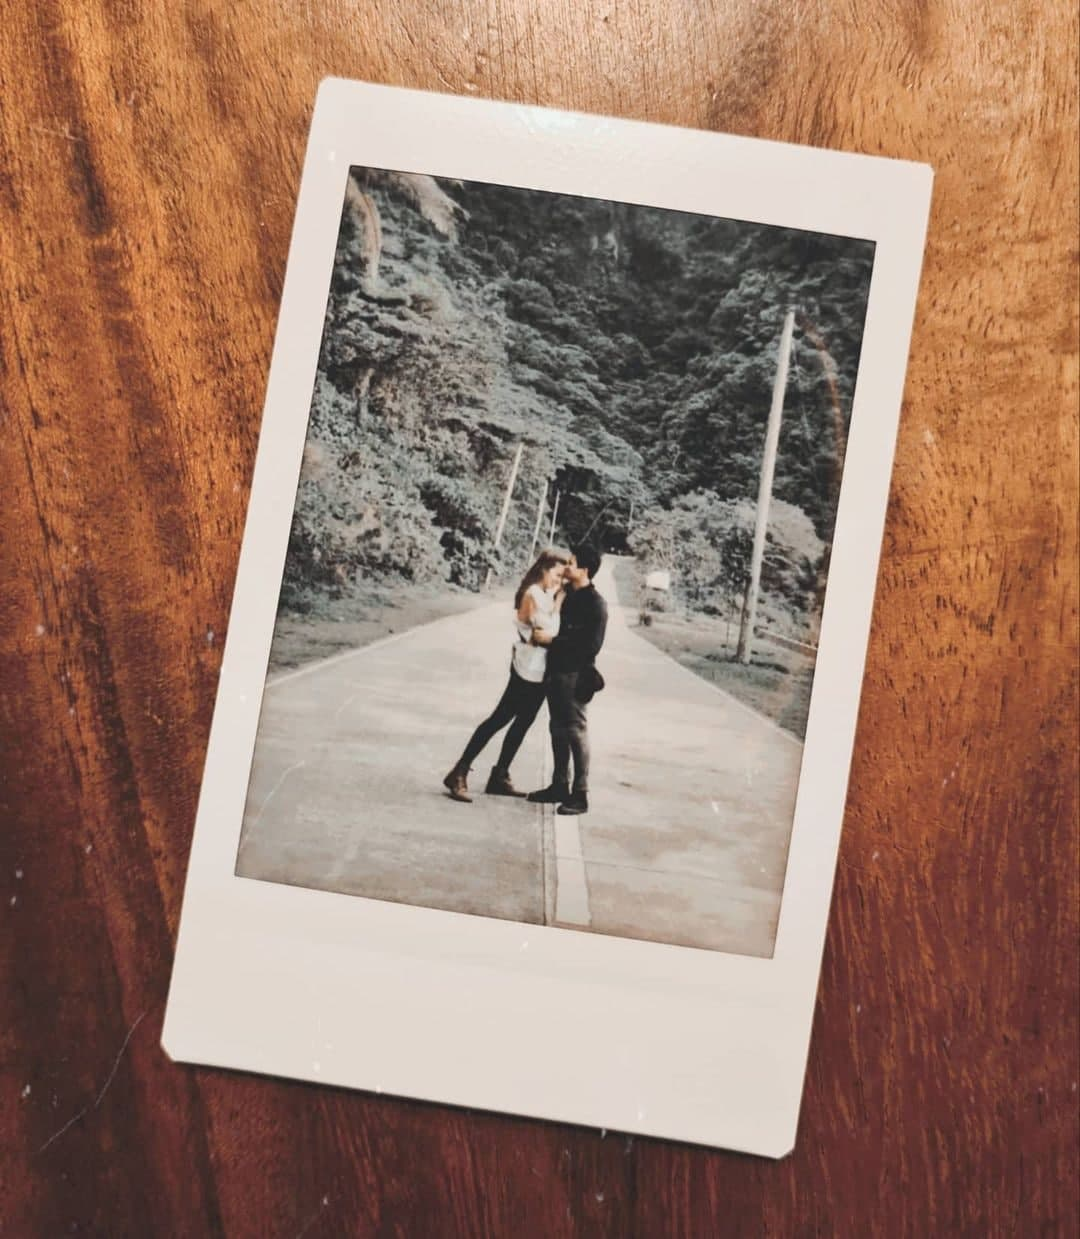 A polaroid photo of Sam Milby and Catriona Gray on a road